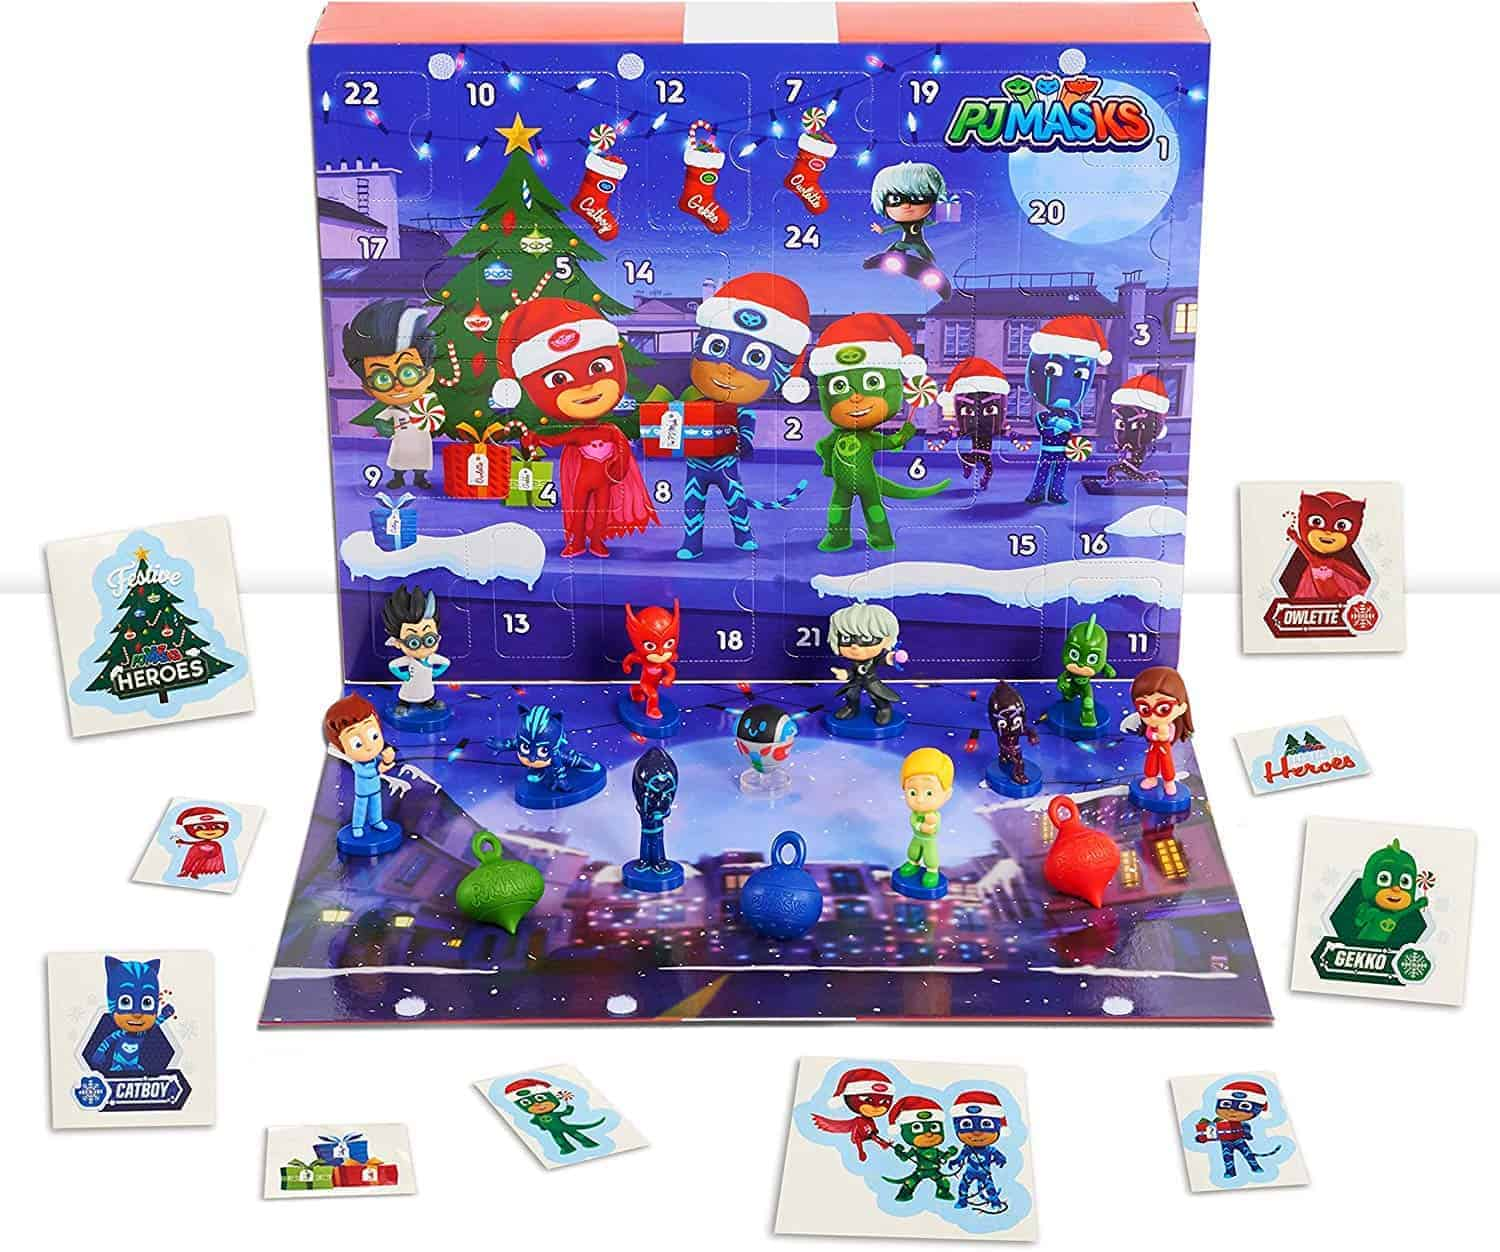 PJ Masks advent calendar.